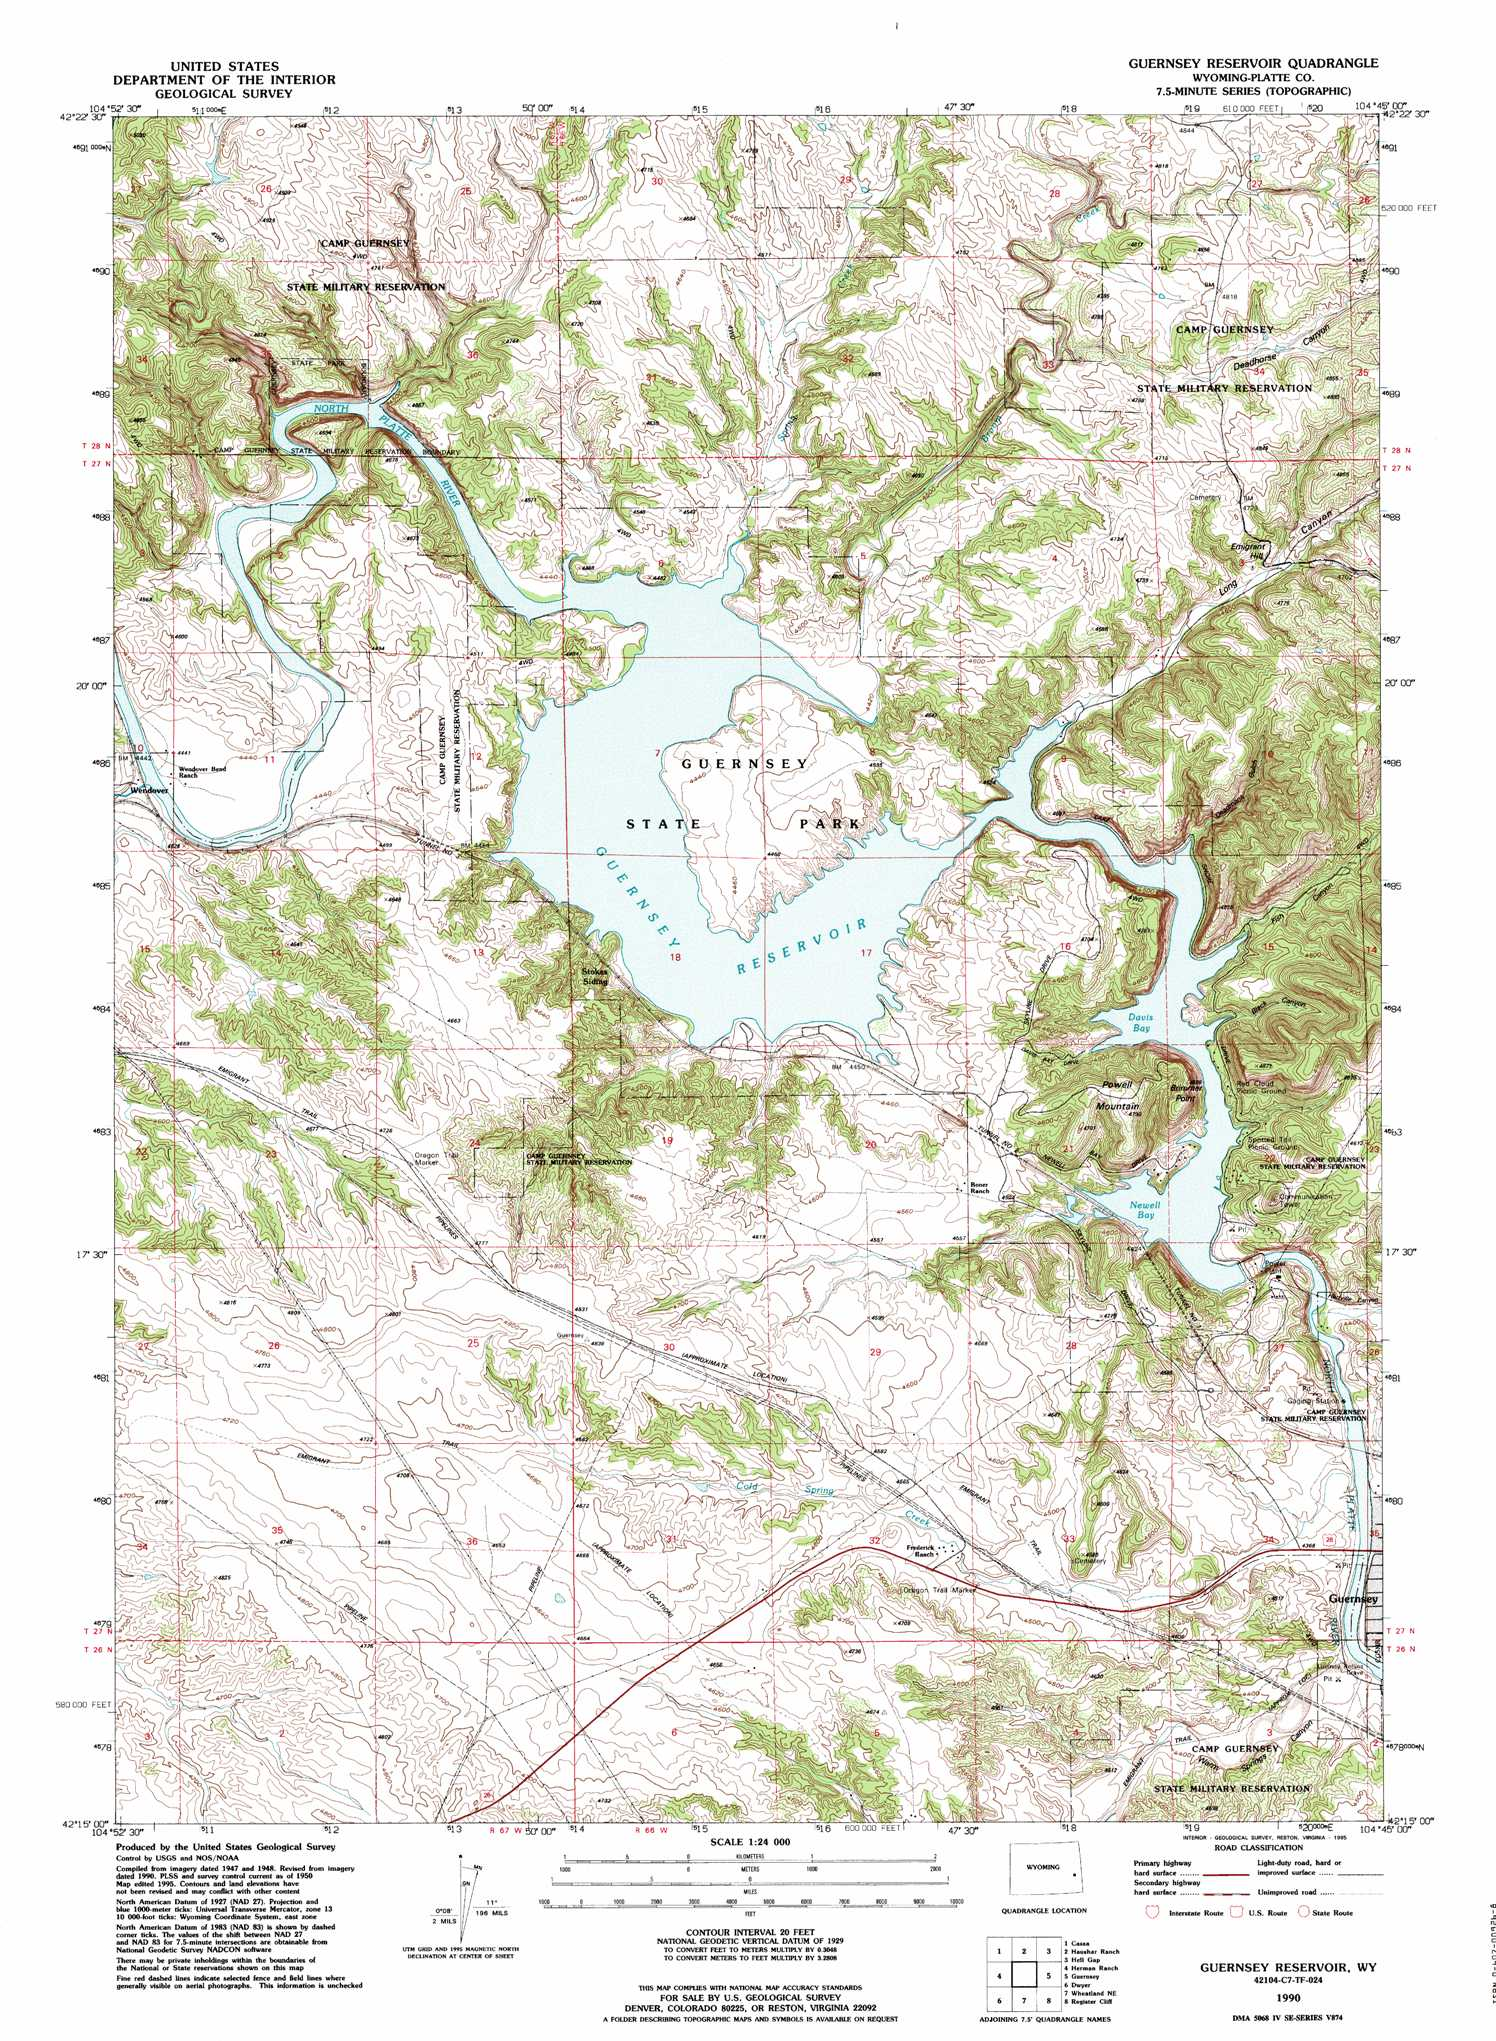 Guernsey Reservoir Topographic Map WY  USGS Topo Quad